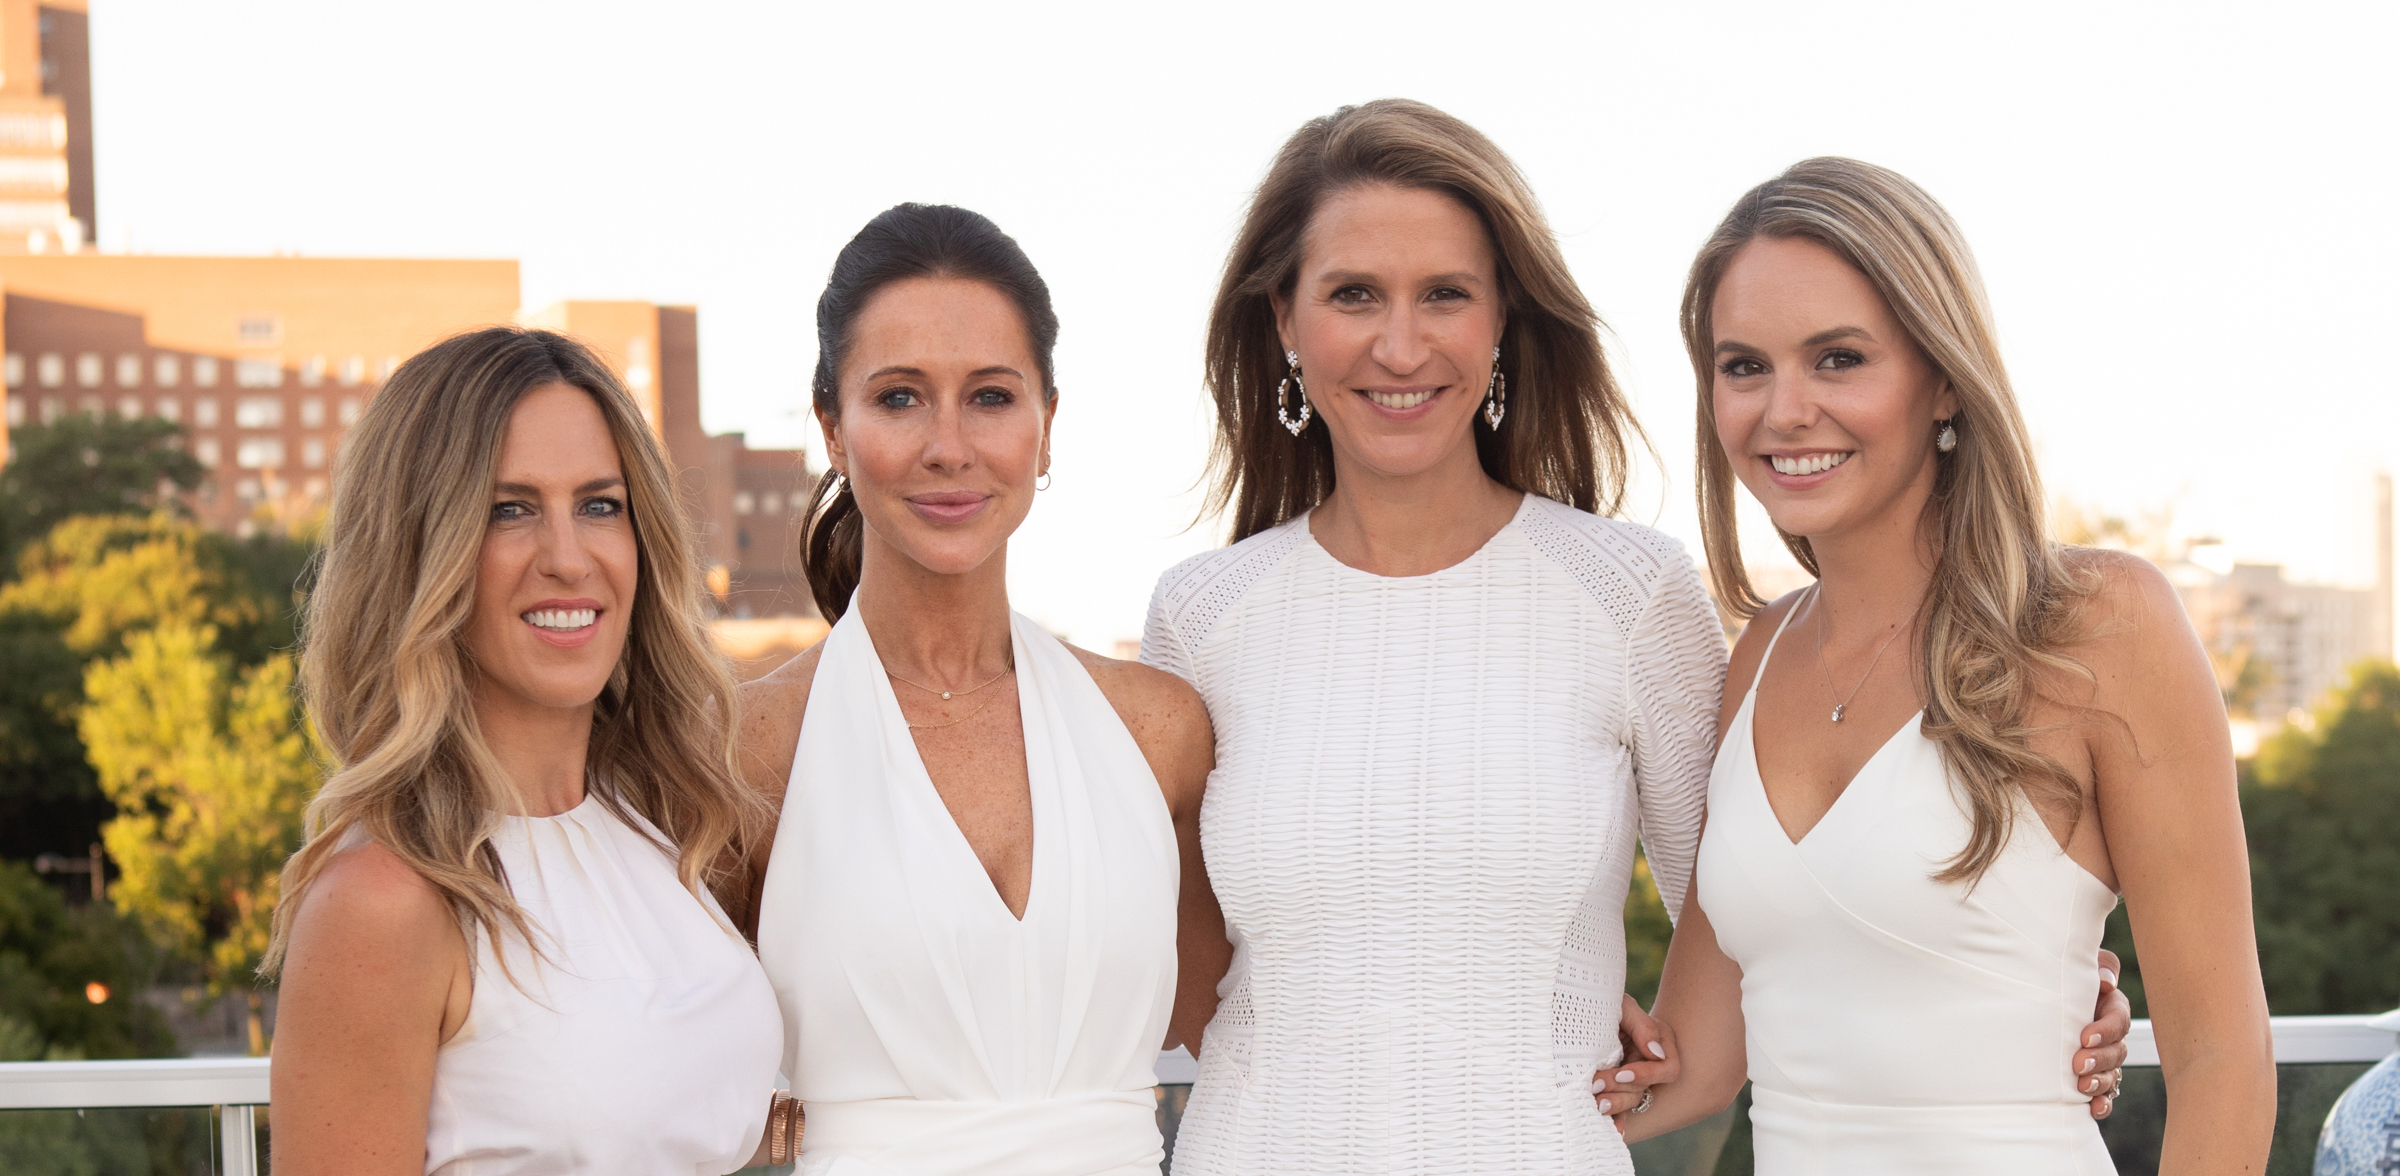 Four sisters in white dresses standing together.